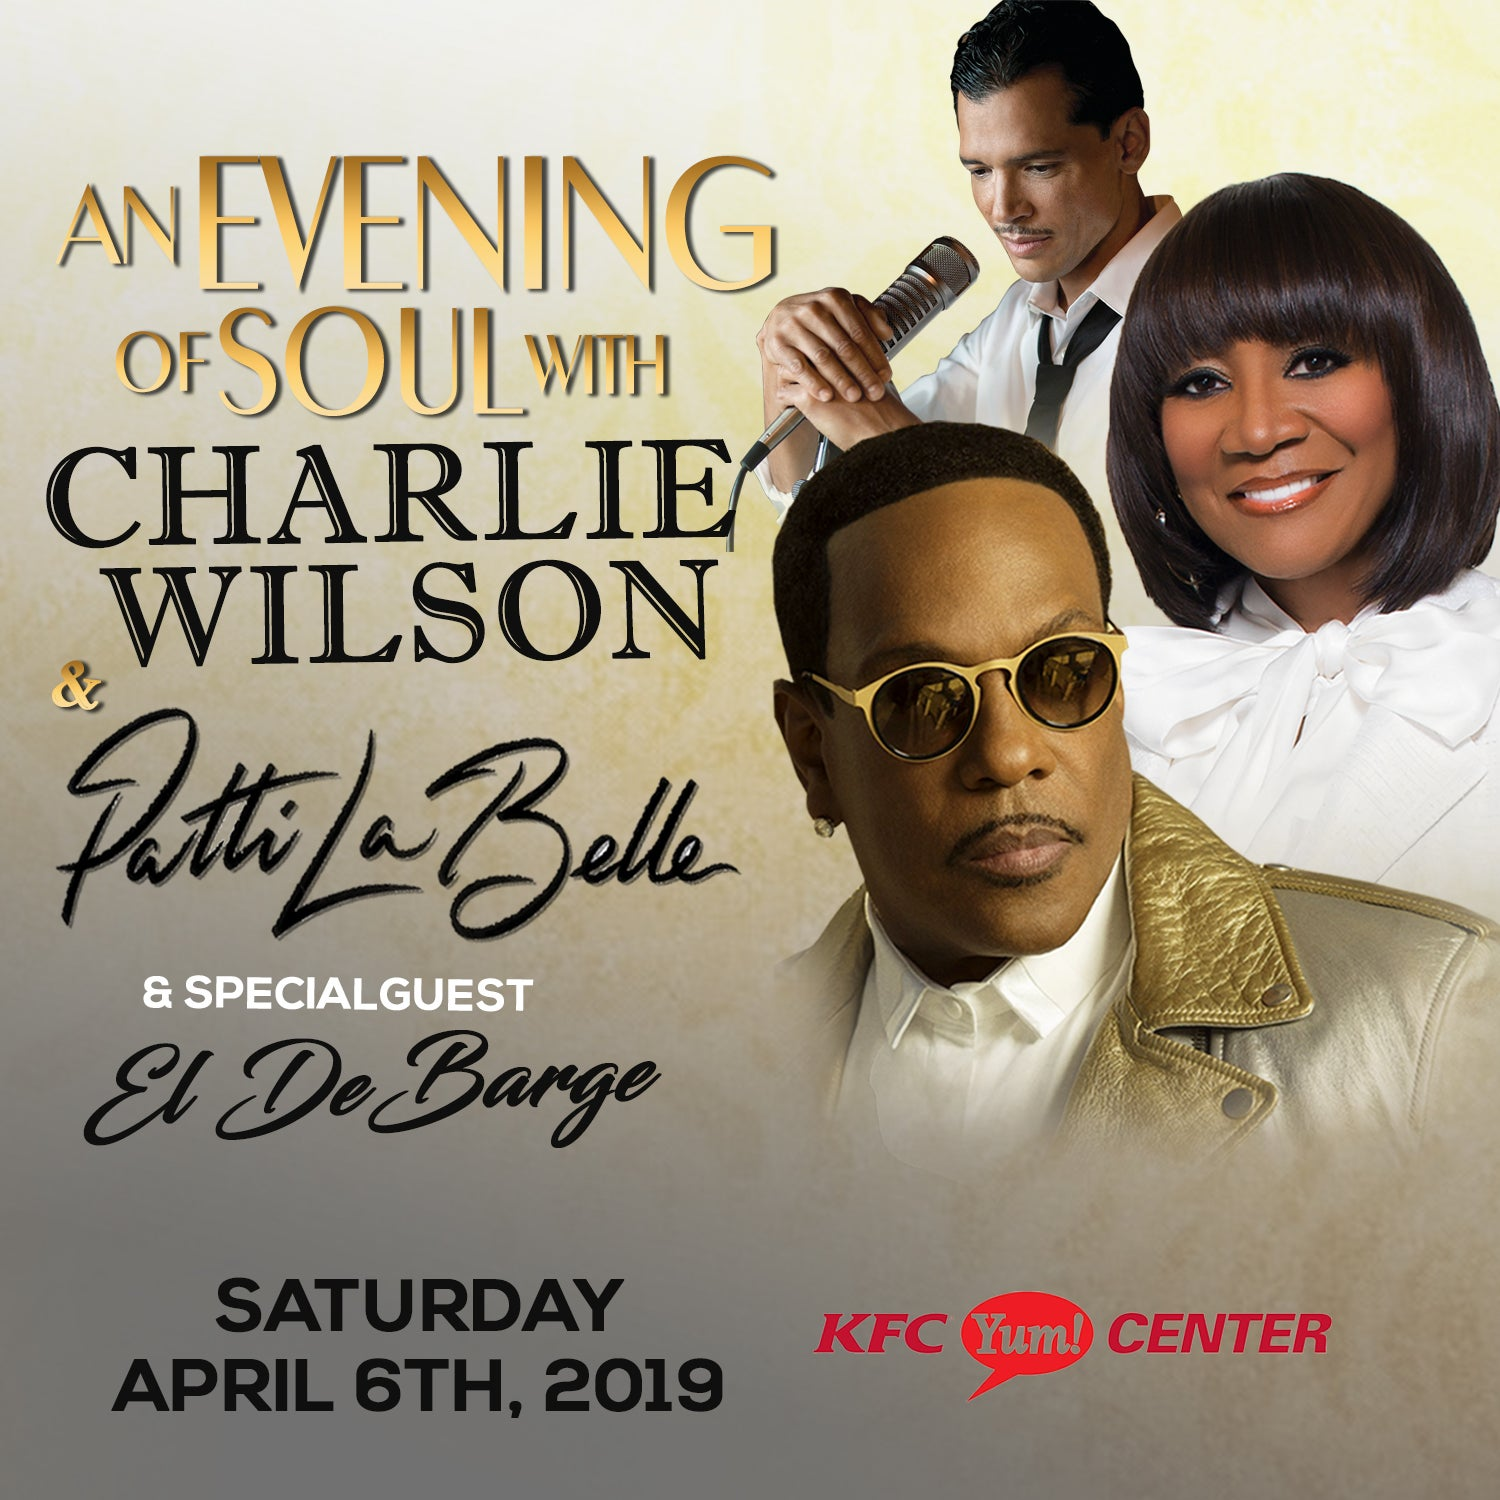 Evening of Soul - instagram - El DeBarge Added.jpg